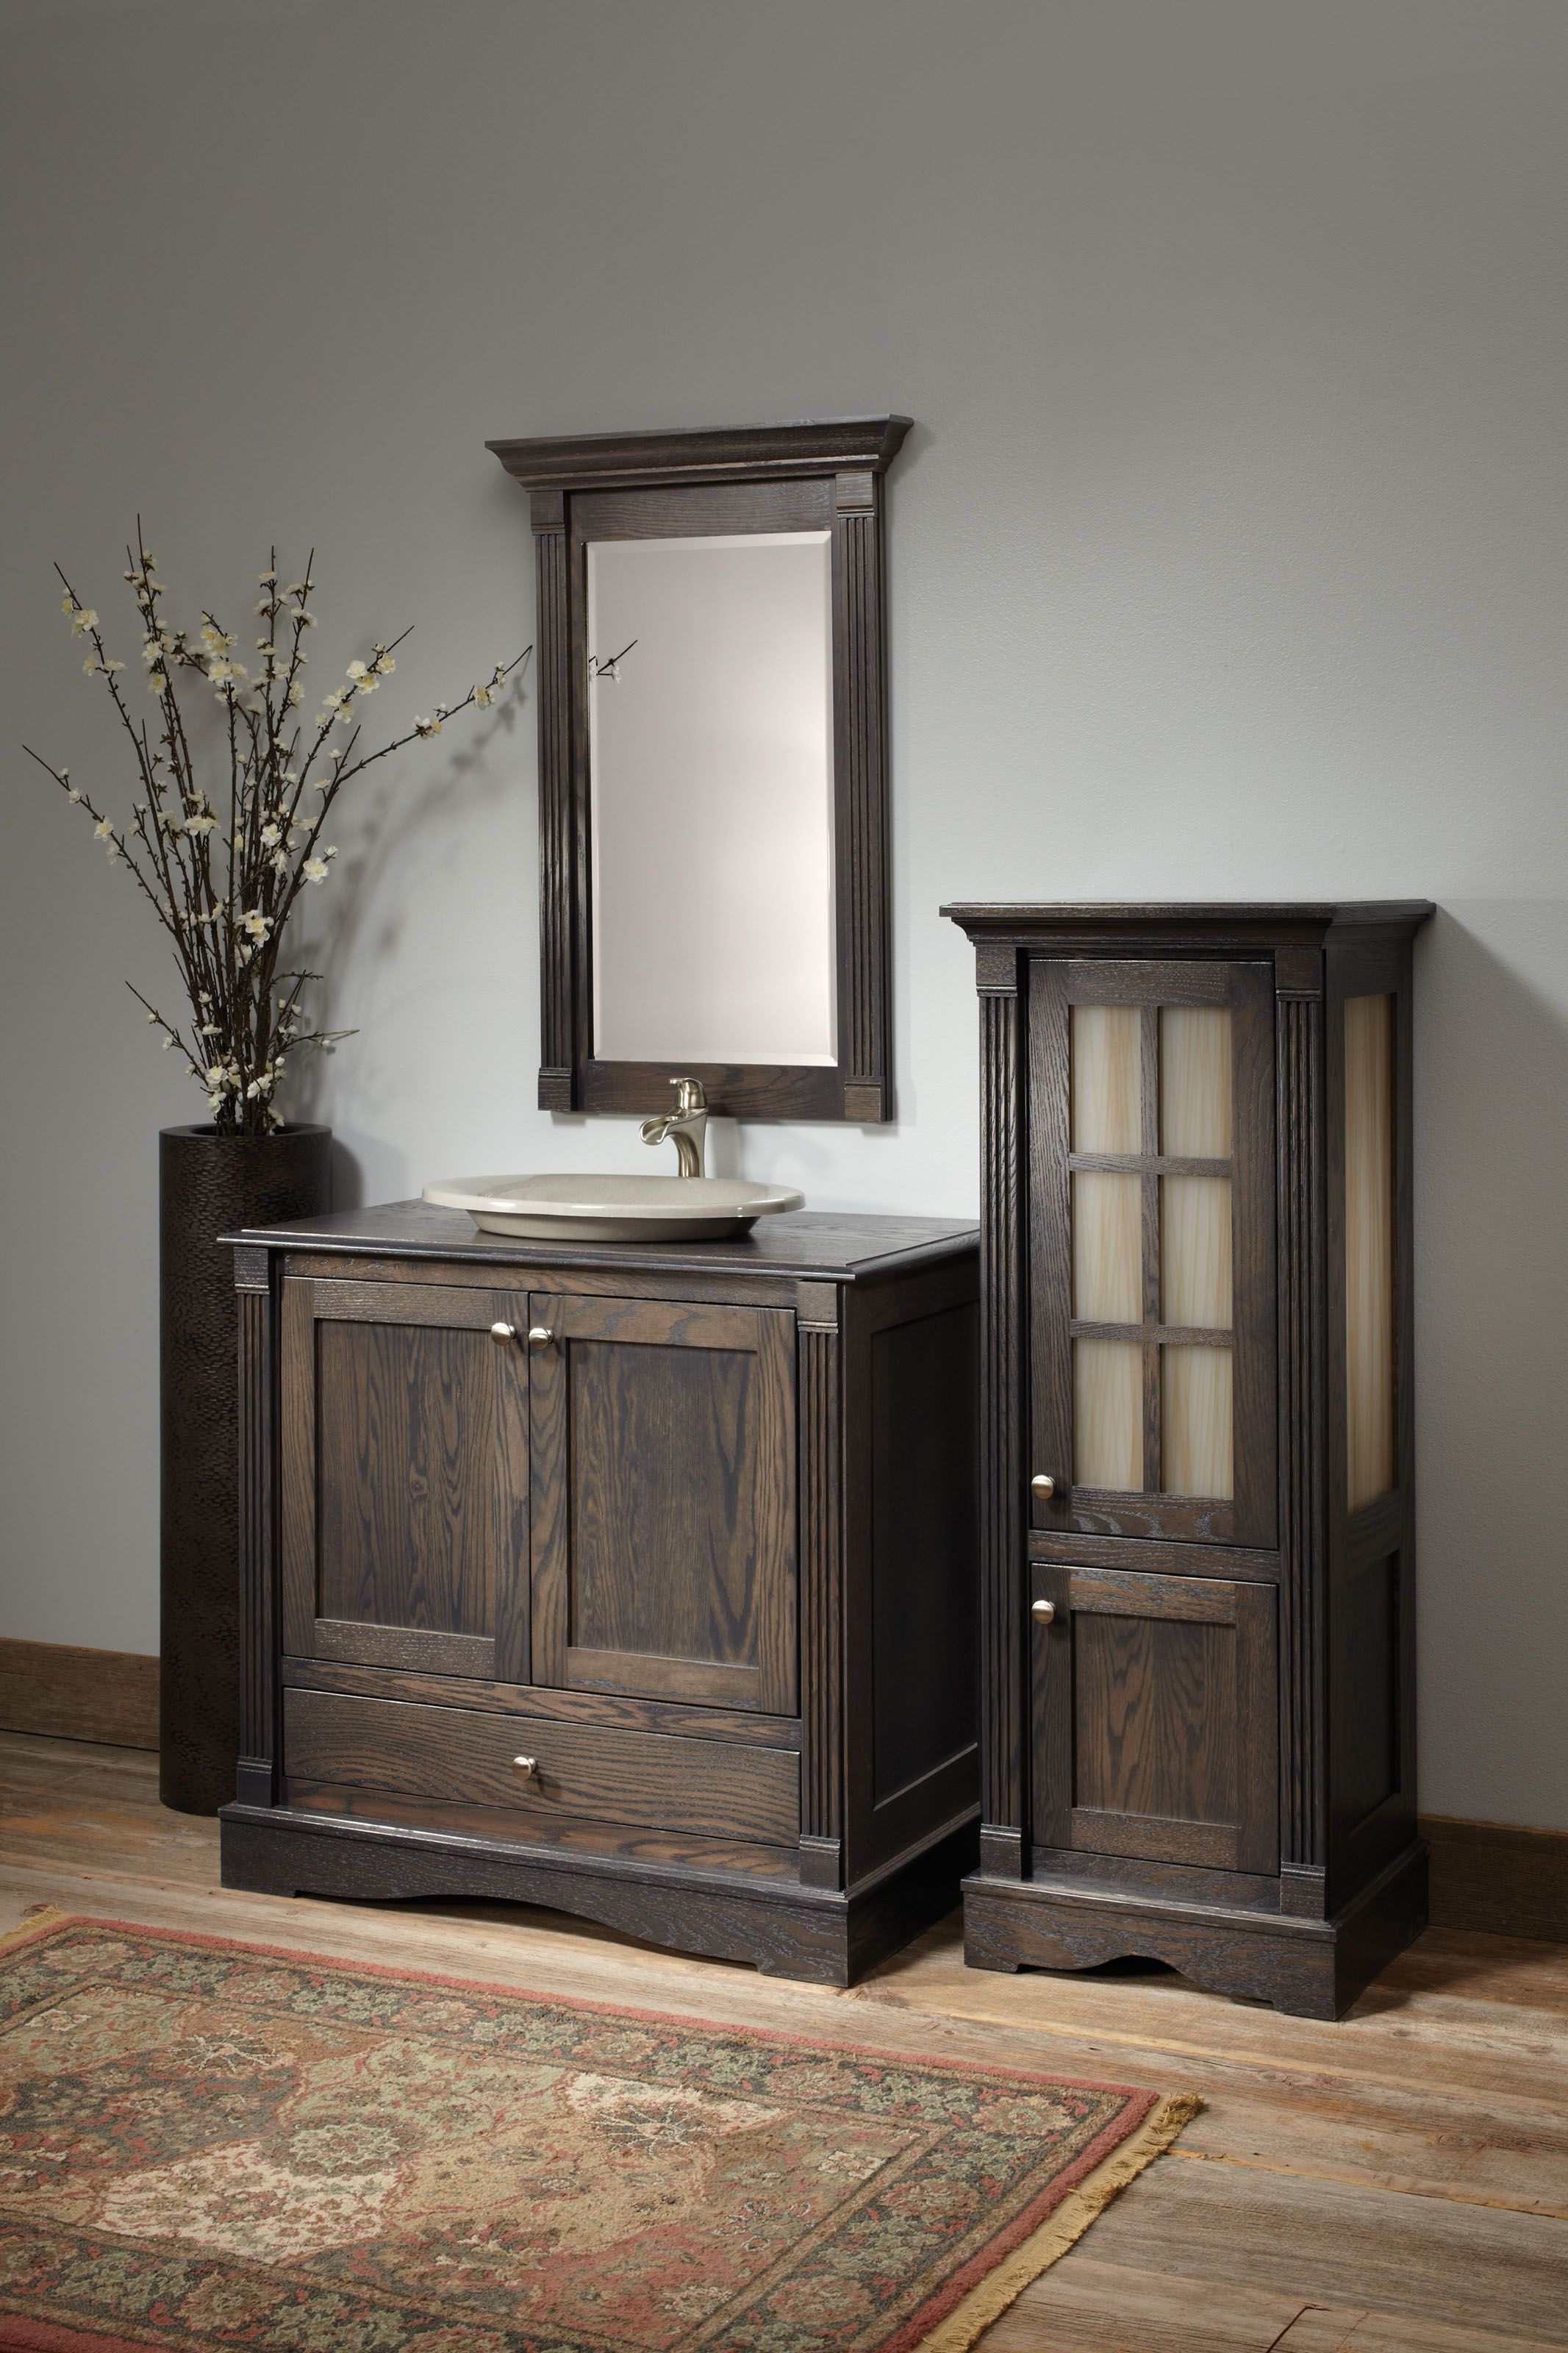 vanity vanities ideas principia bertch including info hudson epic bathroom